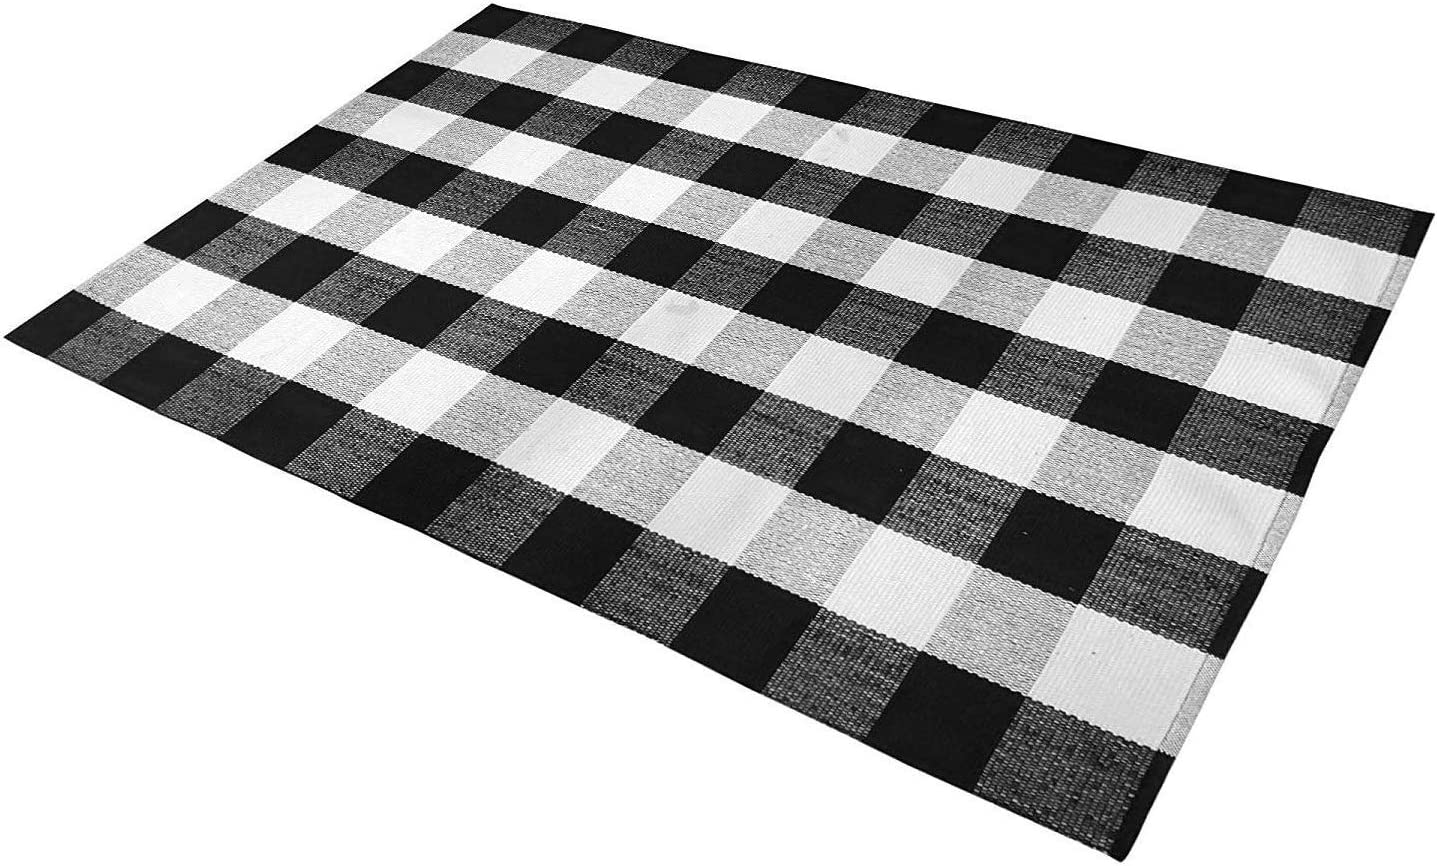 Buffalo Check Rug Black/White Plaid Rugs Cotton Washable Hand-Woven Outdoor Rugs for Layered Welcome Door Mat/Porch/Kitchen/Farmhouse (3' x 5', Black&White)